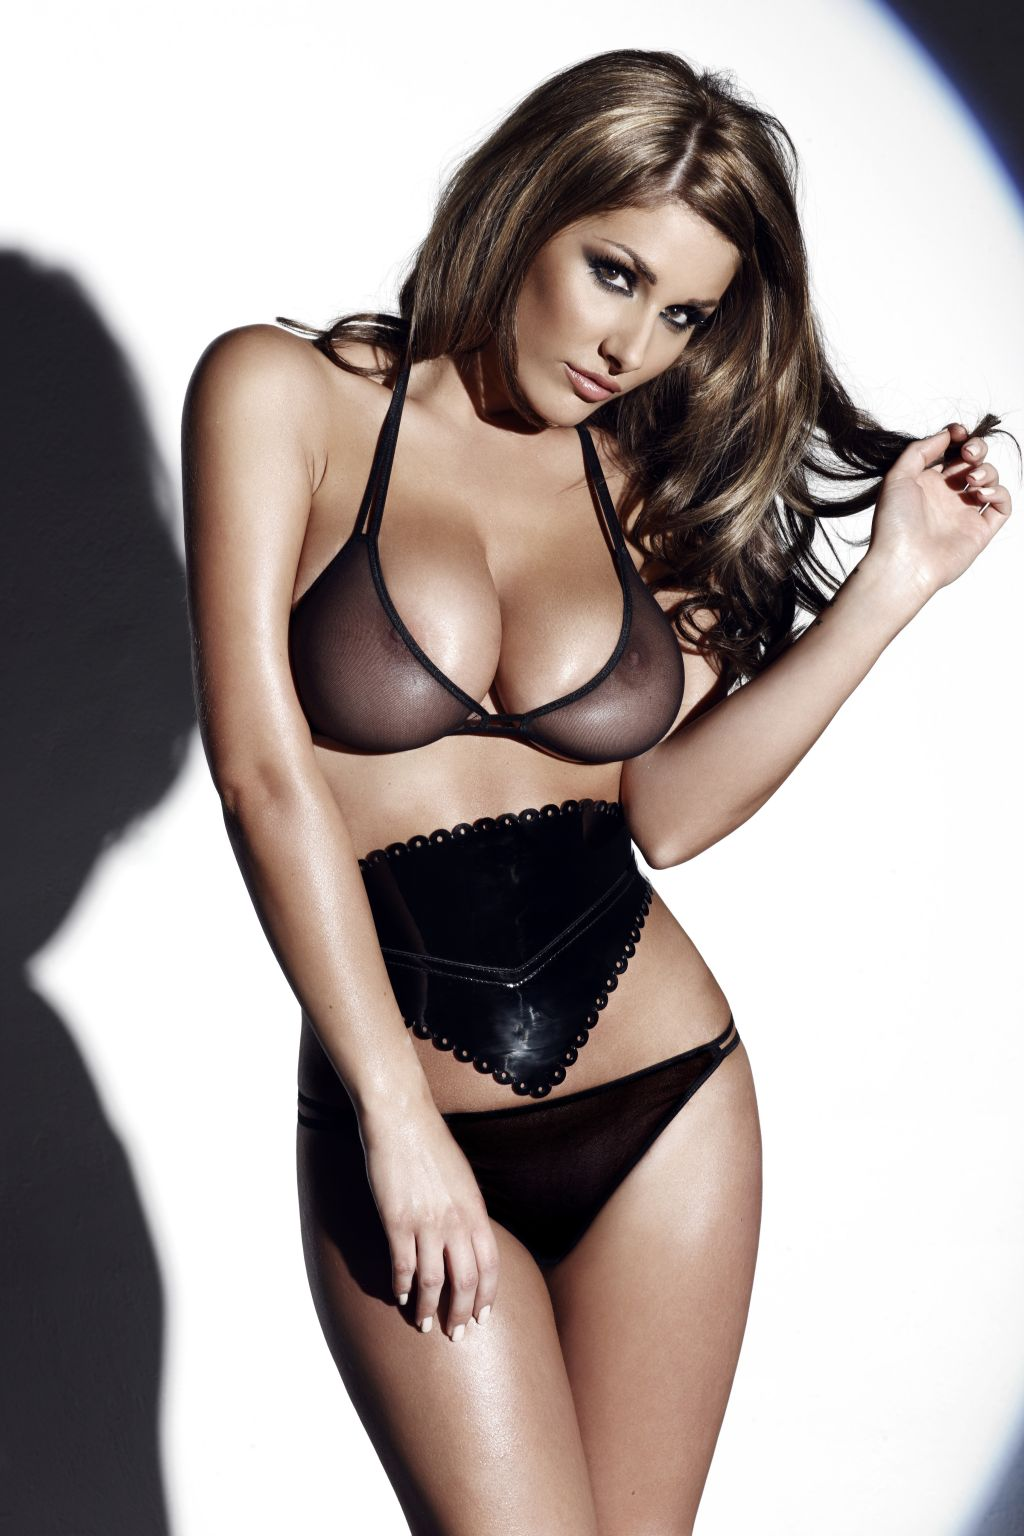 lucy-pinder-feb-2010-20